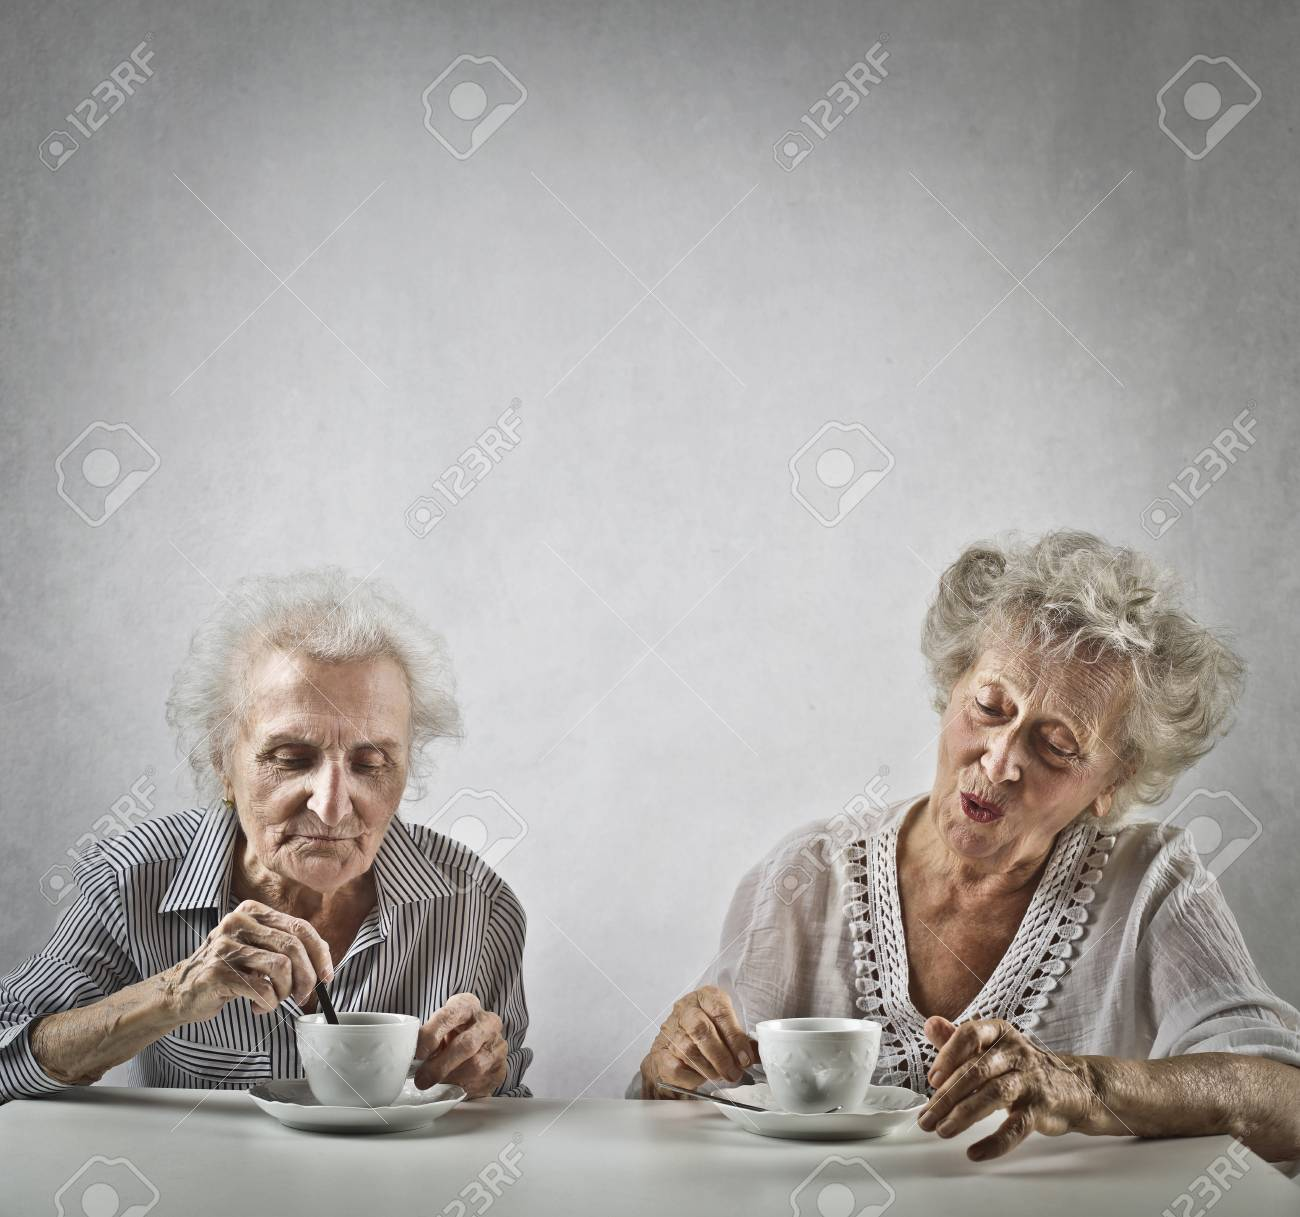 Old Lady Drinking Coffee